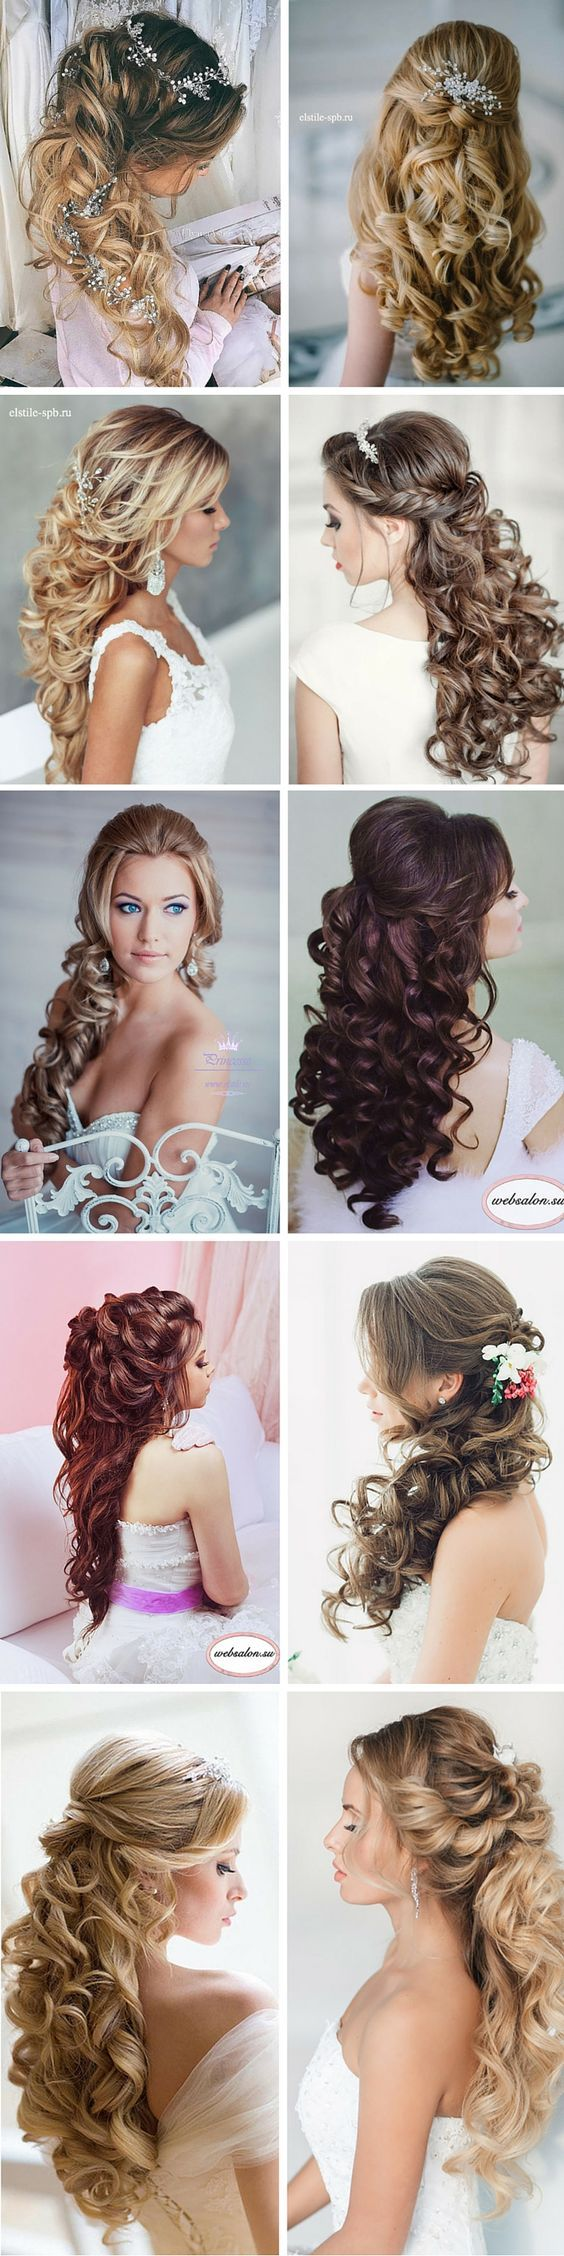 Penteados winter formal pinterest hair style curly